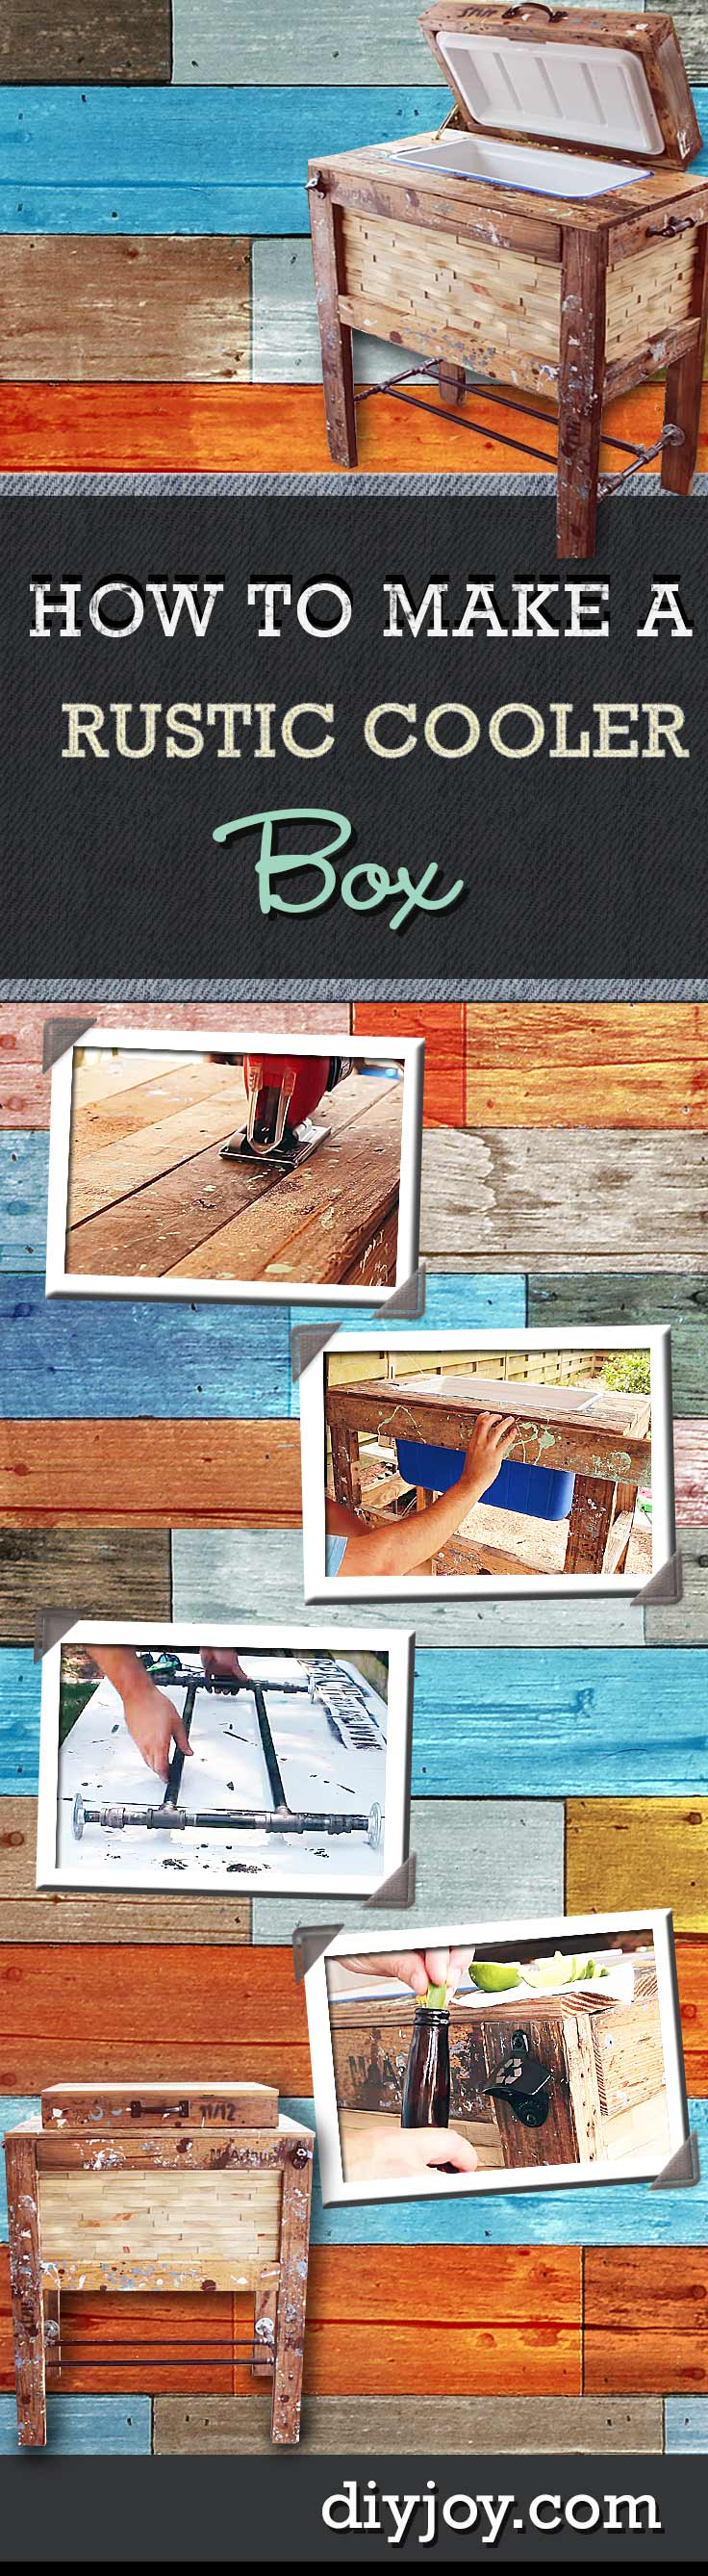 DIY Patio Furniture Ideas - Rustic Cooler Box - Cheap Do It Yourself Porch and Easy Backyard Furniture, Rocking Chairs, Swings, Benches, Stools and Seating Tutorials - Dining Tables from Pallets, Cinder Blocks and Upcyle Ideas - Sectional Couch Plans With Cushions - Makeover Tips for Existing Furniture #diyideas #outdoors #diy #backyardideas #diyfurniture #patio #diyjoy http://diyjoy.com/diy-patio-furniture-ideas